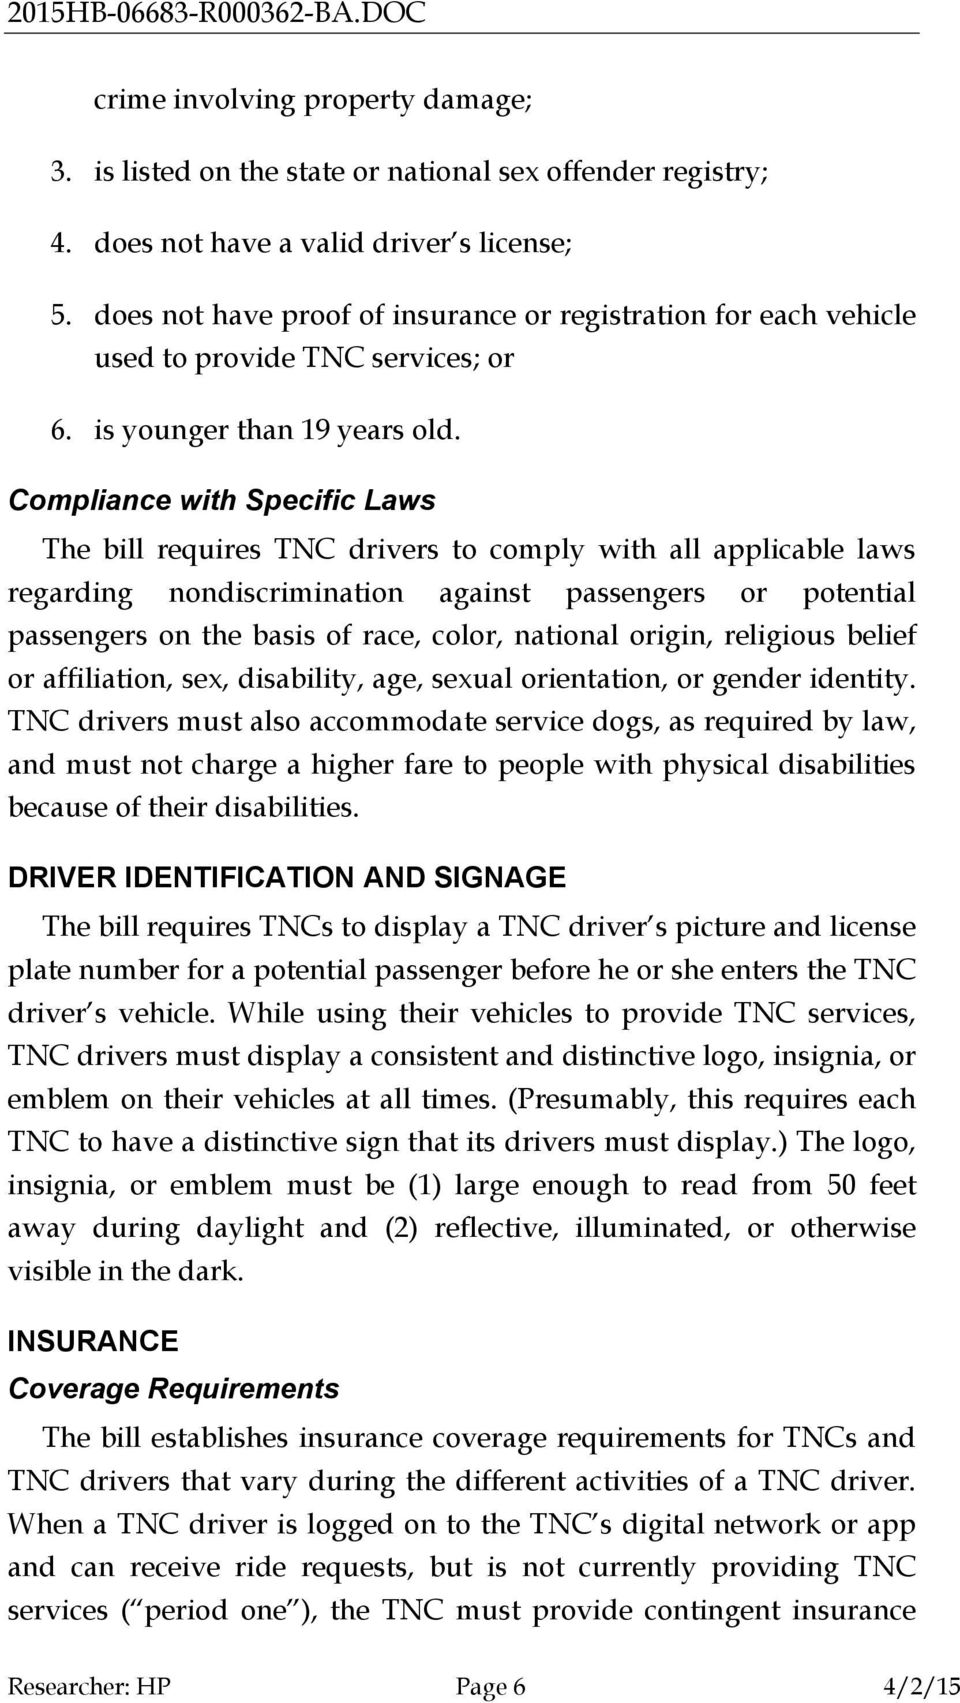 Compliance with Specific Laws The bill requires TNC drivers to comply with all applicable laws regarding nondiscrimination against passengers or potential passengers on the basis of race, color,